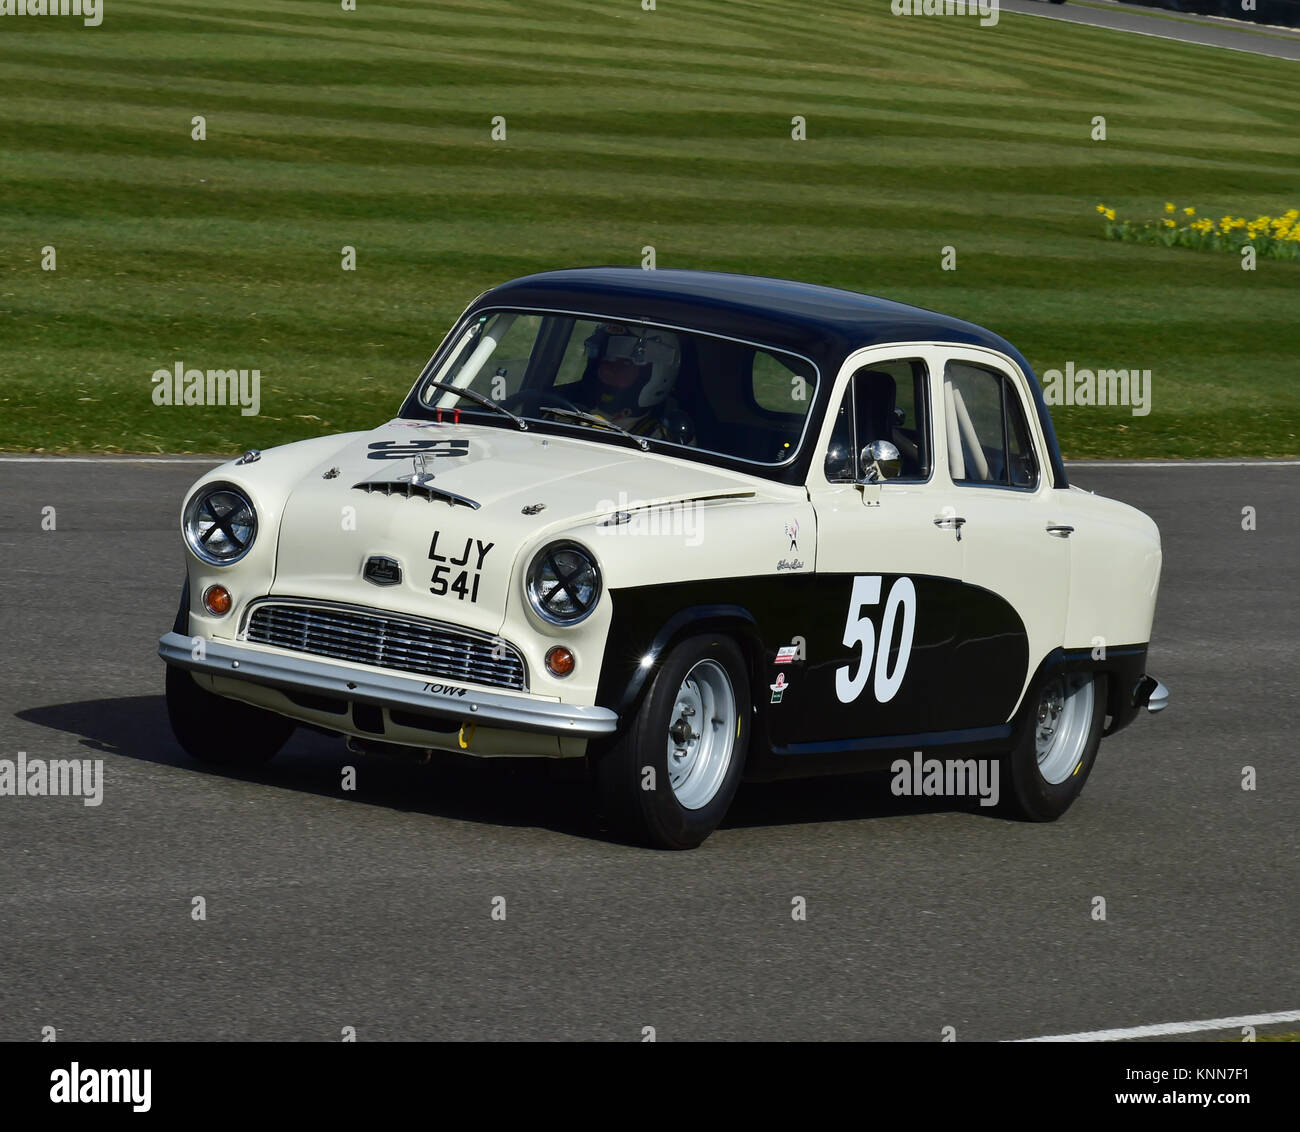 Peter Blanchett, Austin A50, LJY 541, Sopwith Cup, Goodwood 73rd MM March 2015, 73rd, 73rd Members Meeting, Chris - Stock Image